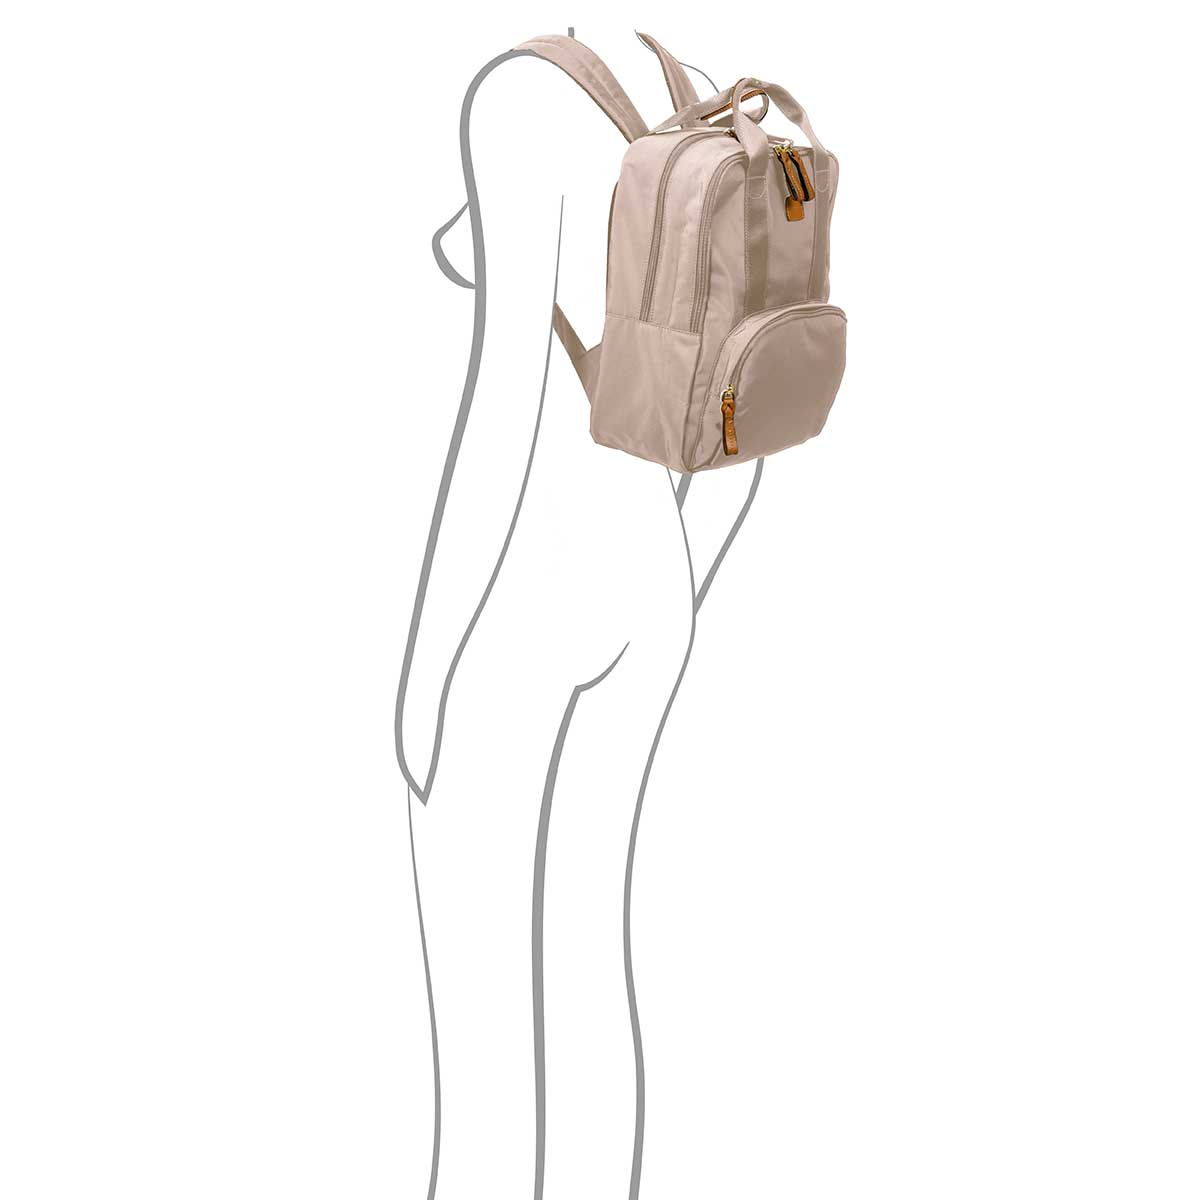 X-bag Urban Backpack - Papyrus | BRIC'S Travel Bags